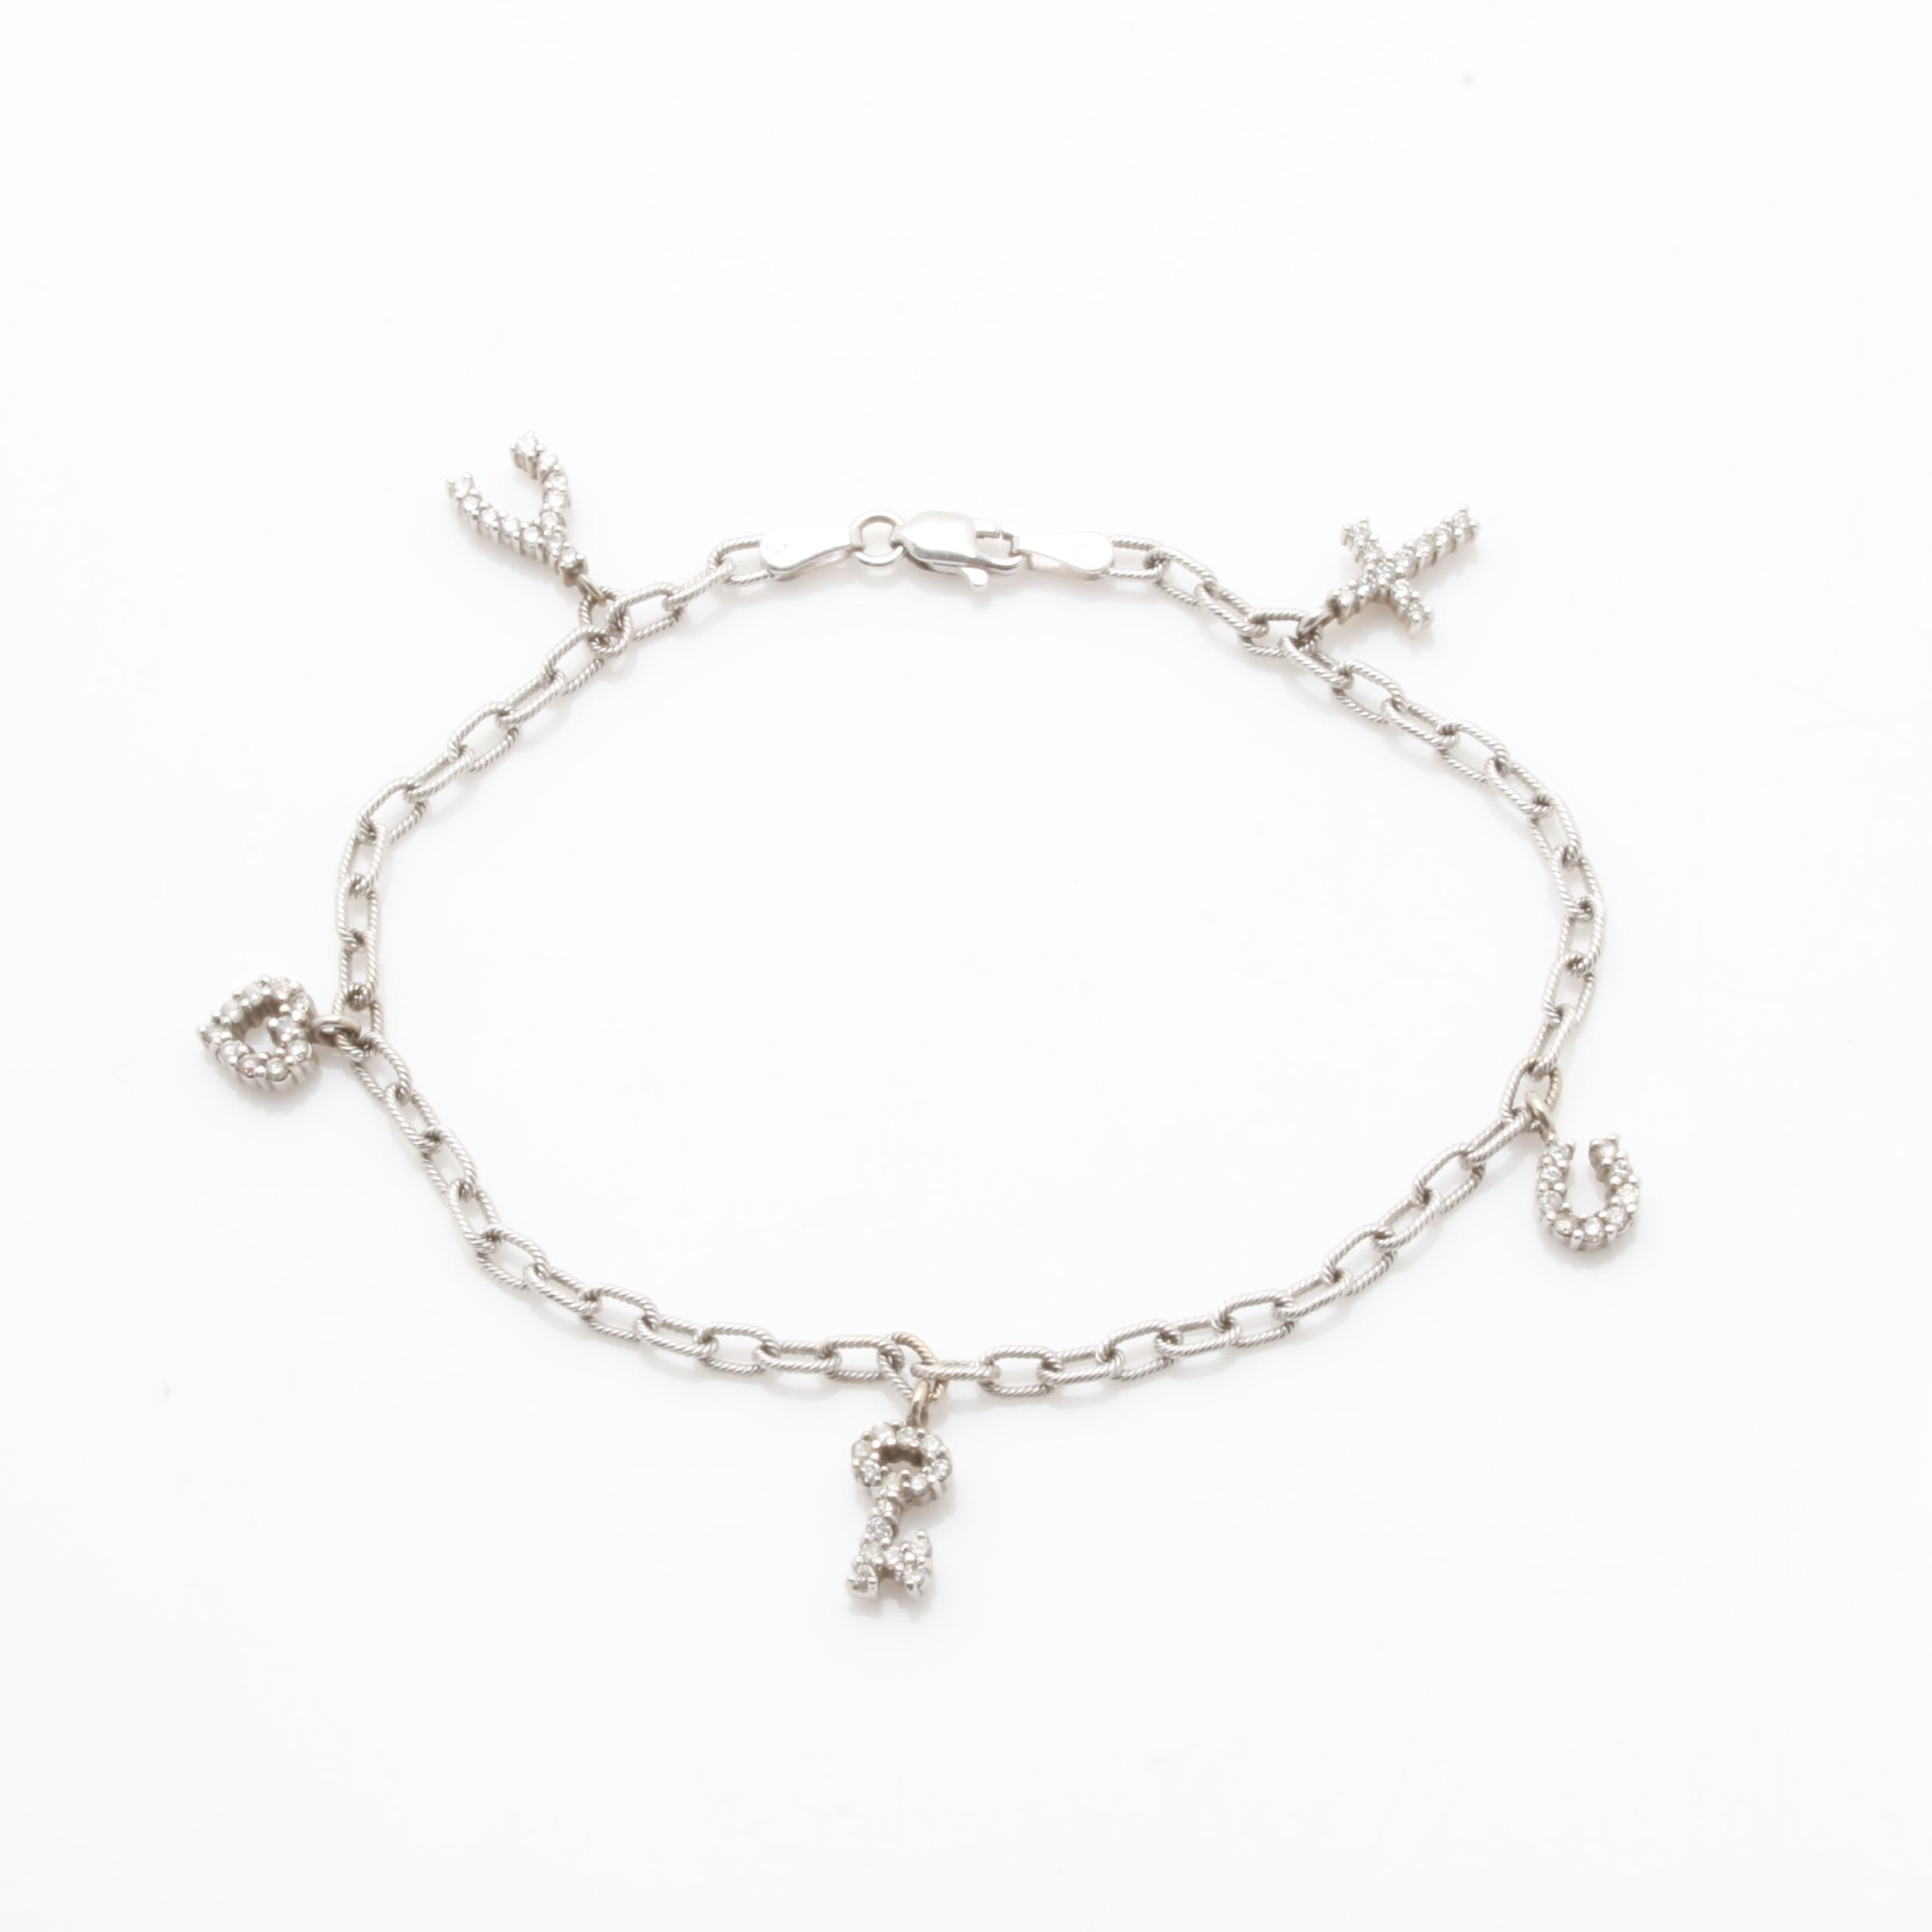 14K White Gold Diamond Charm Bracelet